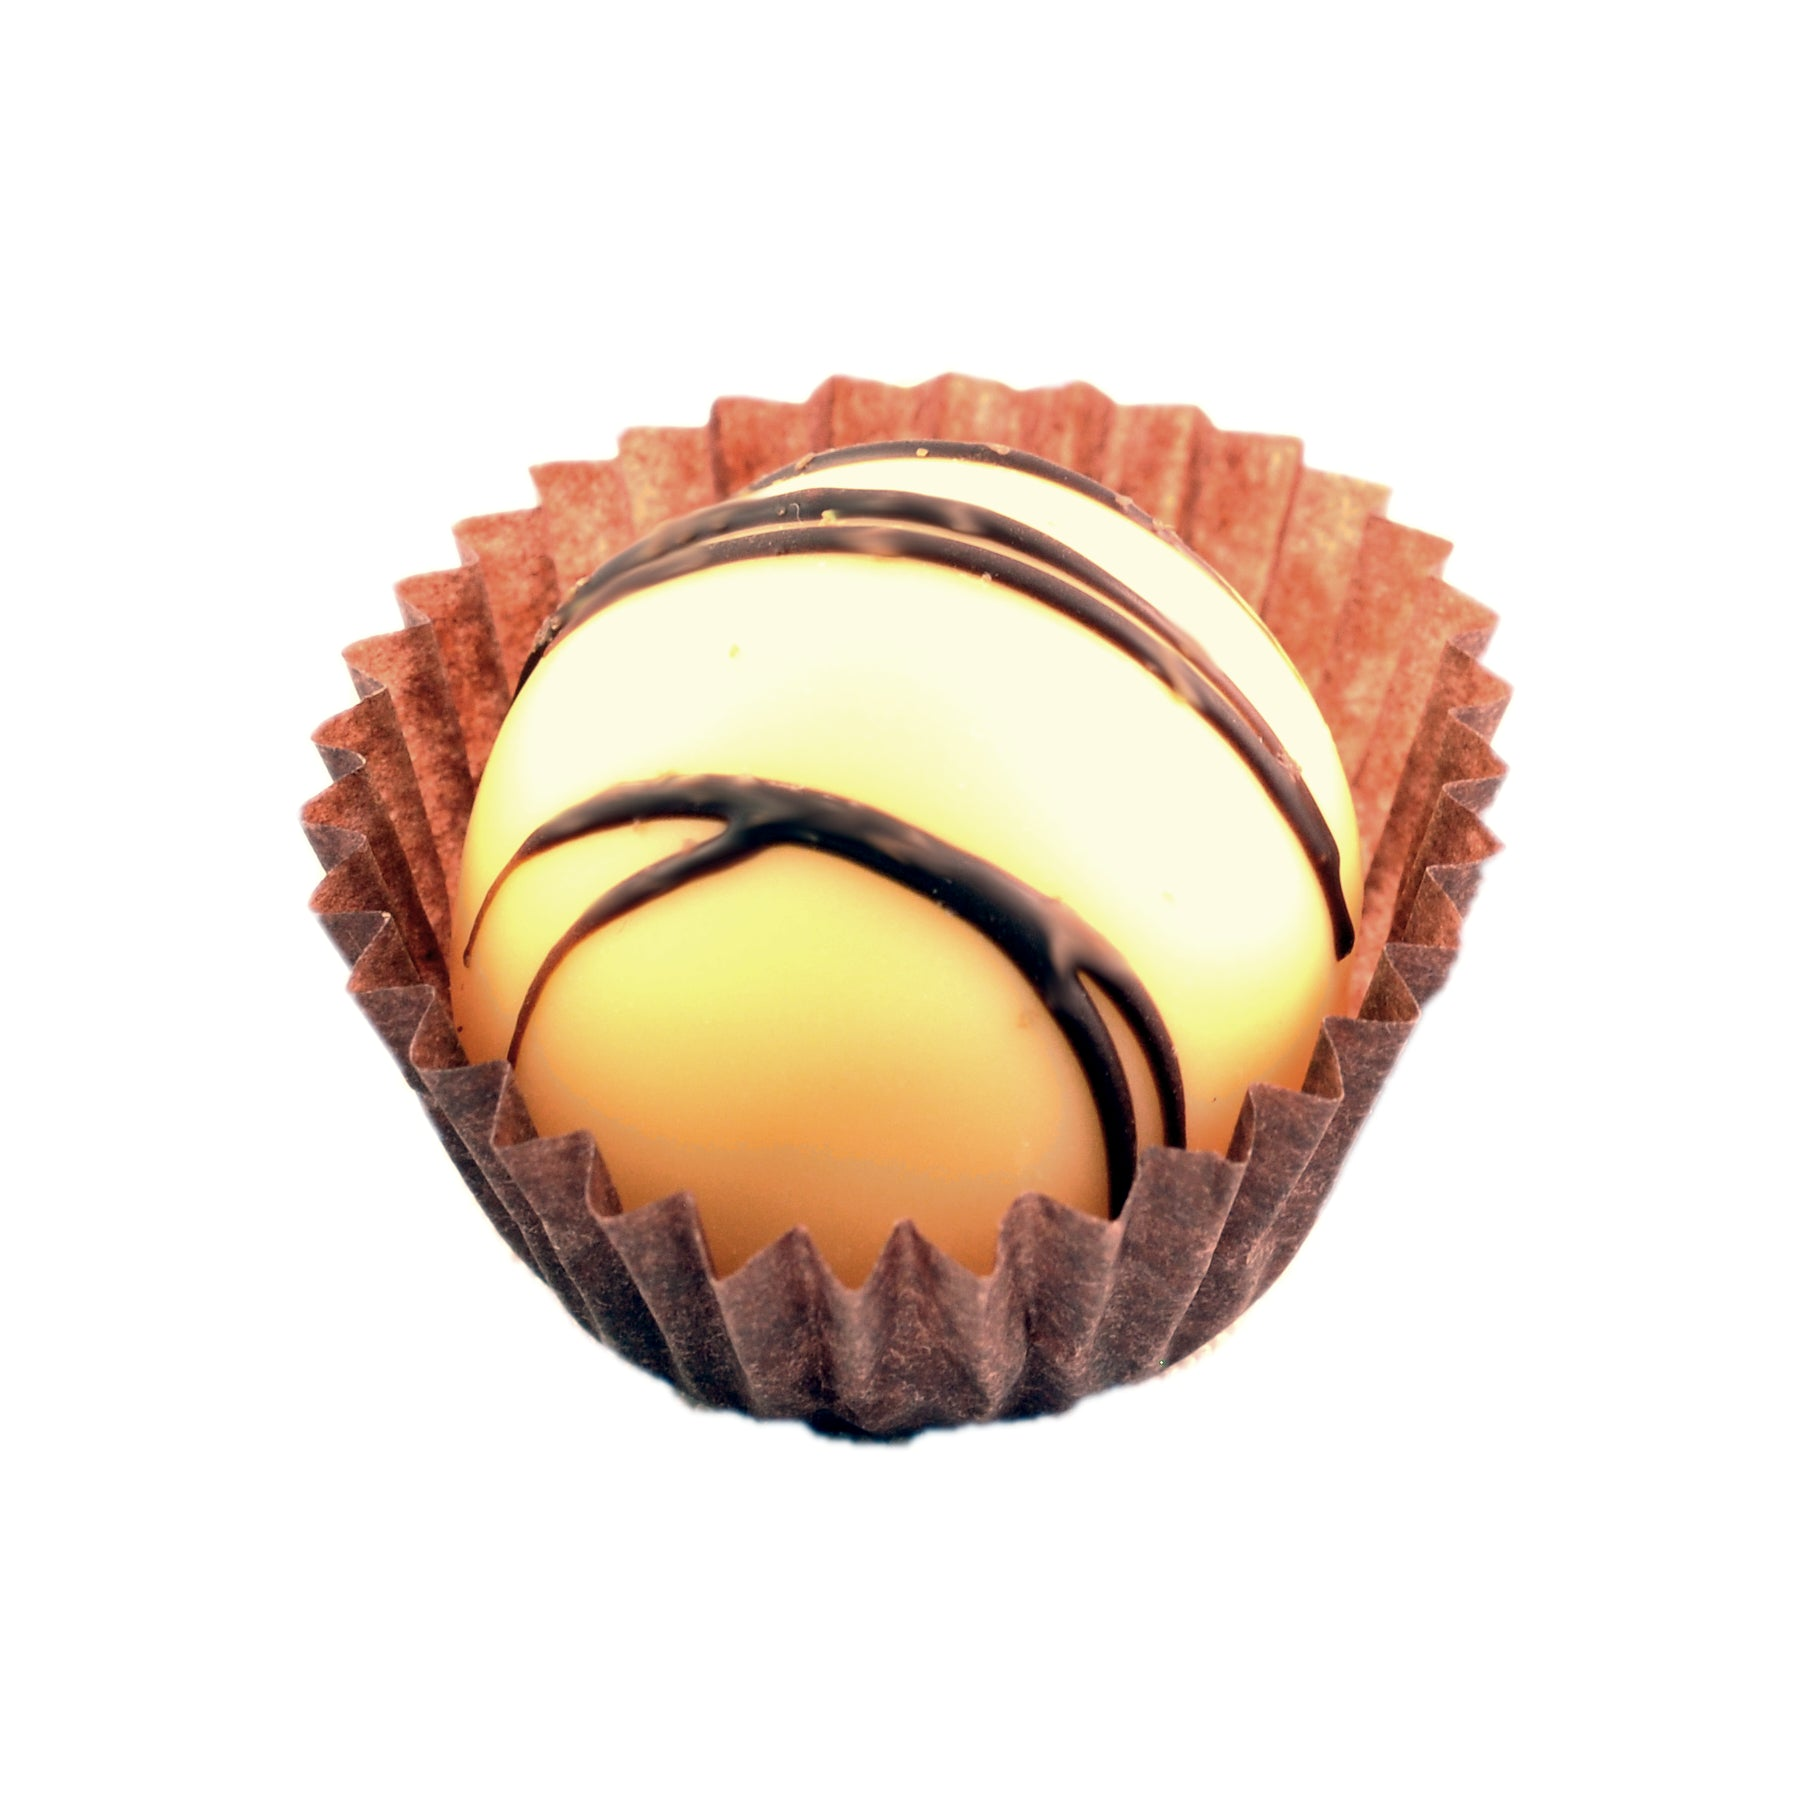 Butterscotch Truffle